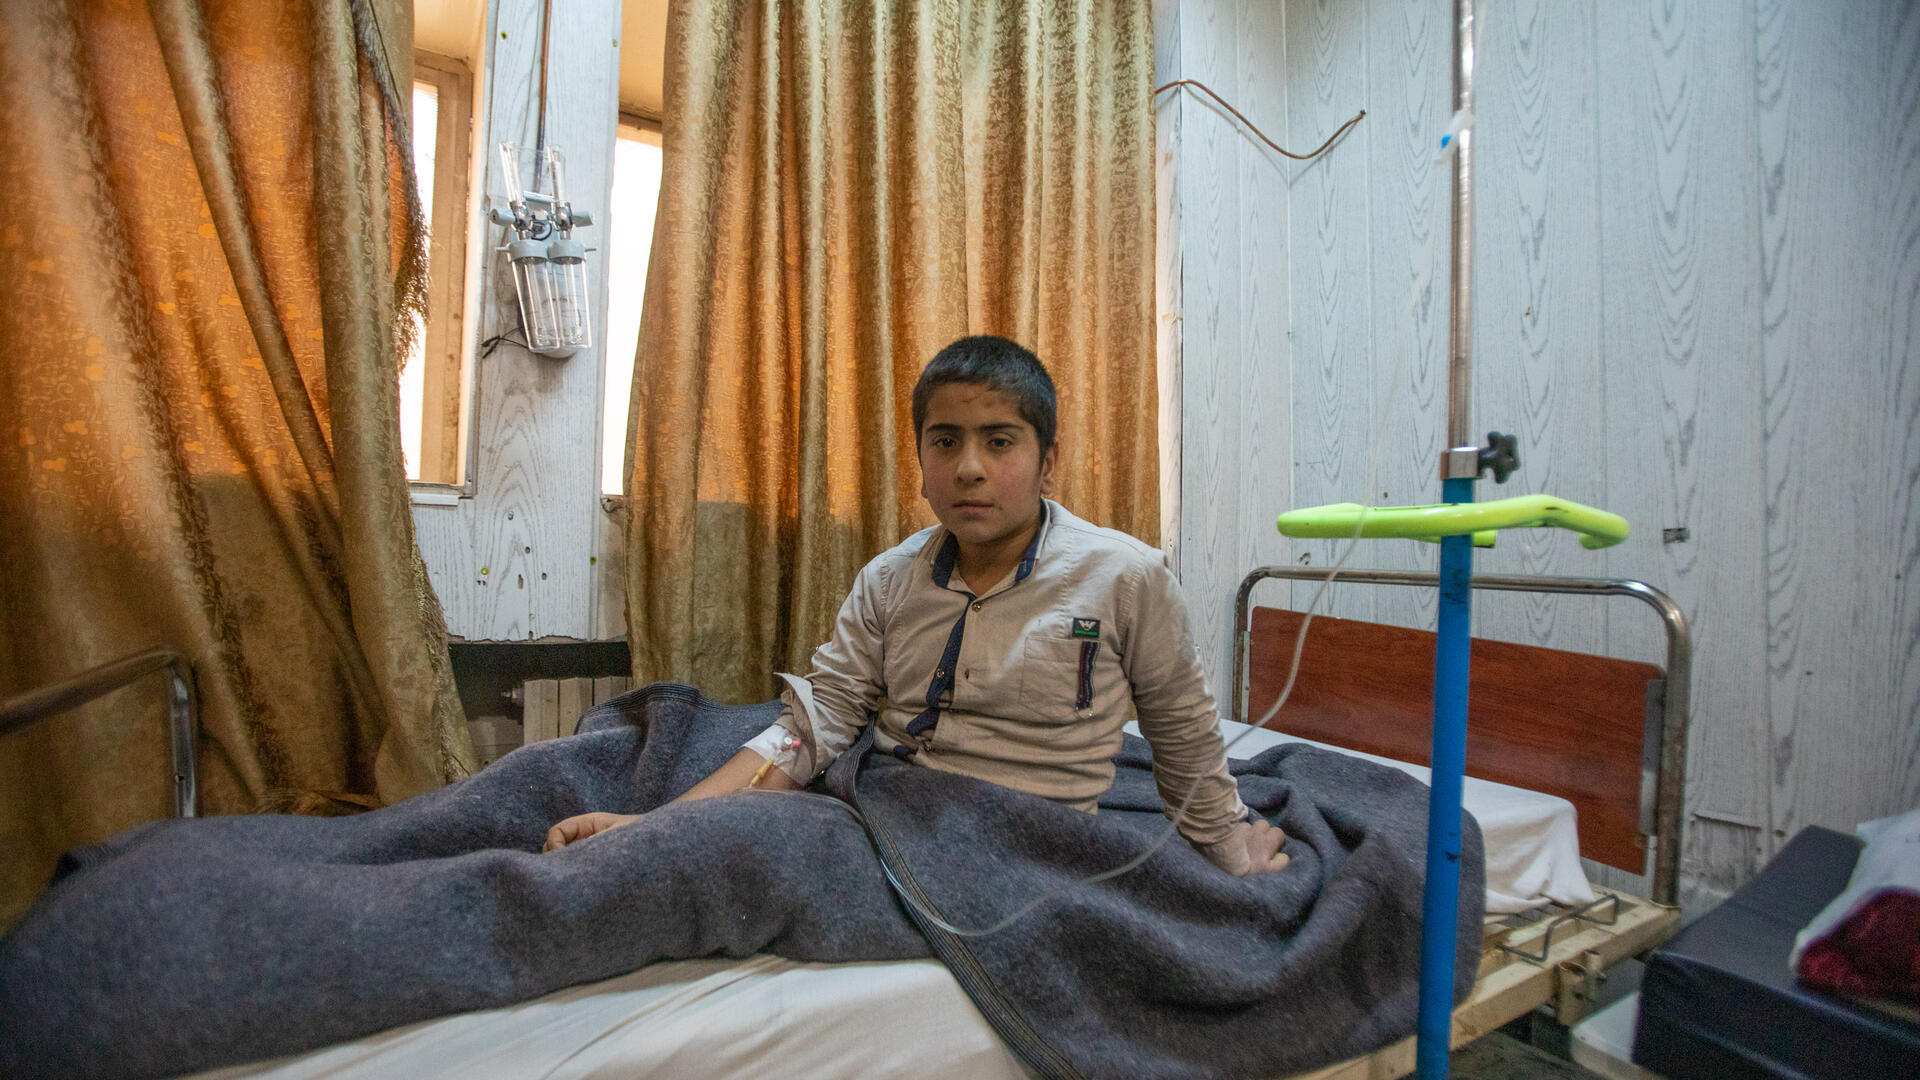 A patient sits up in his hospital bed in Syria.